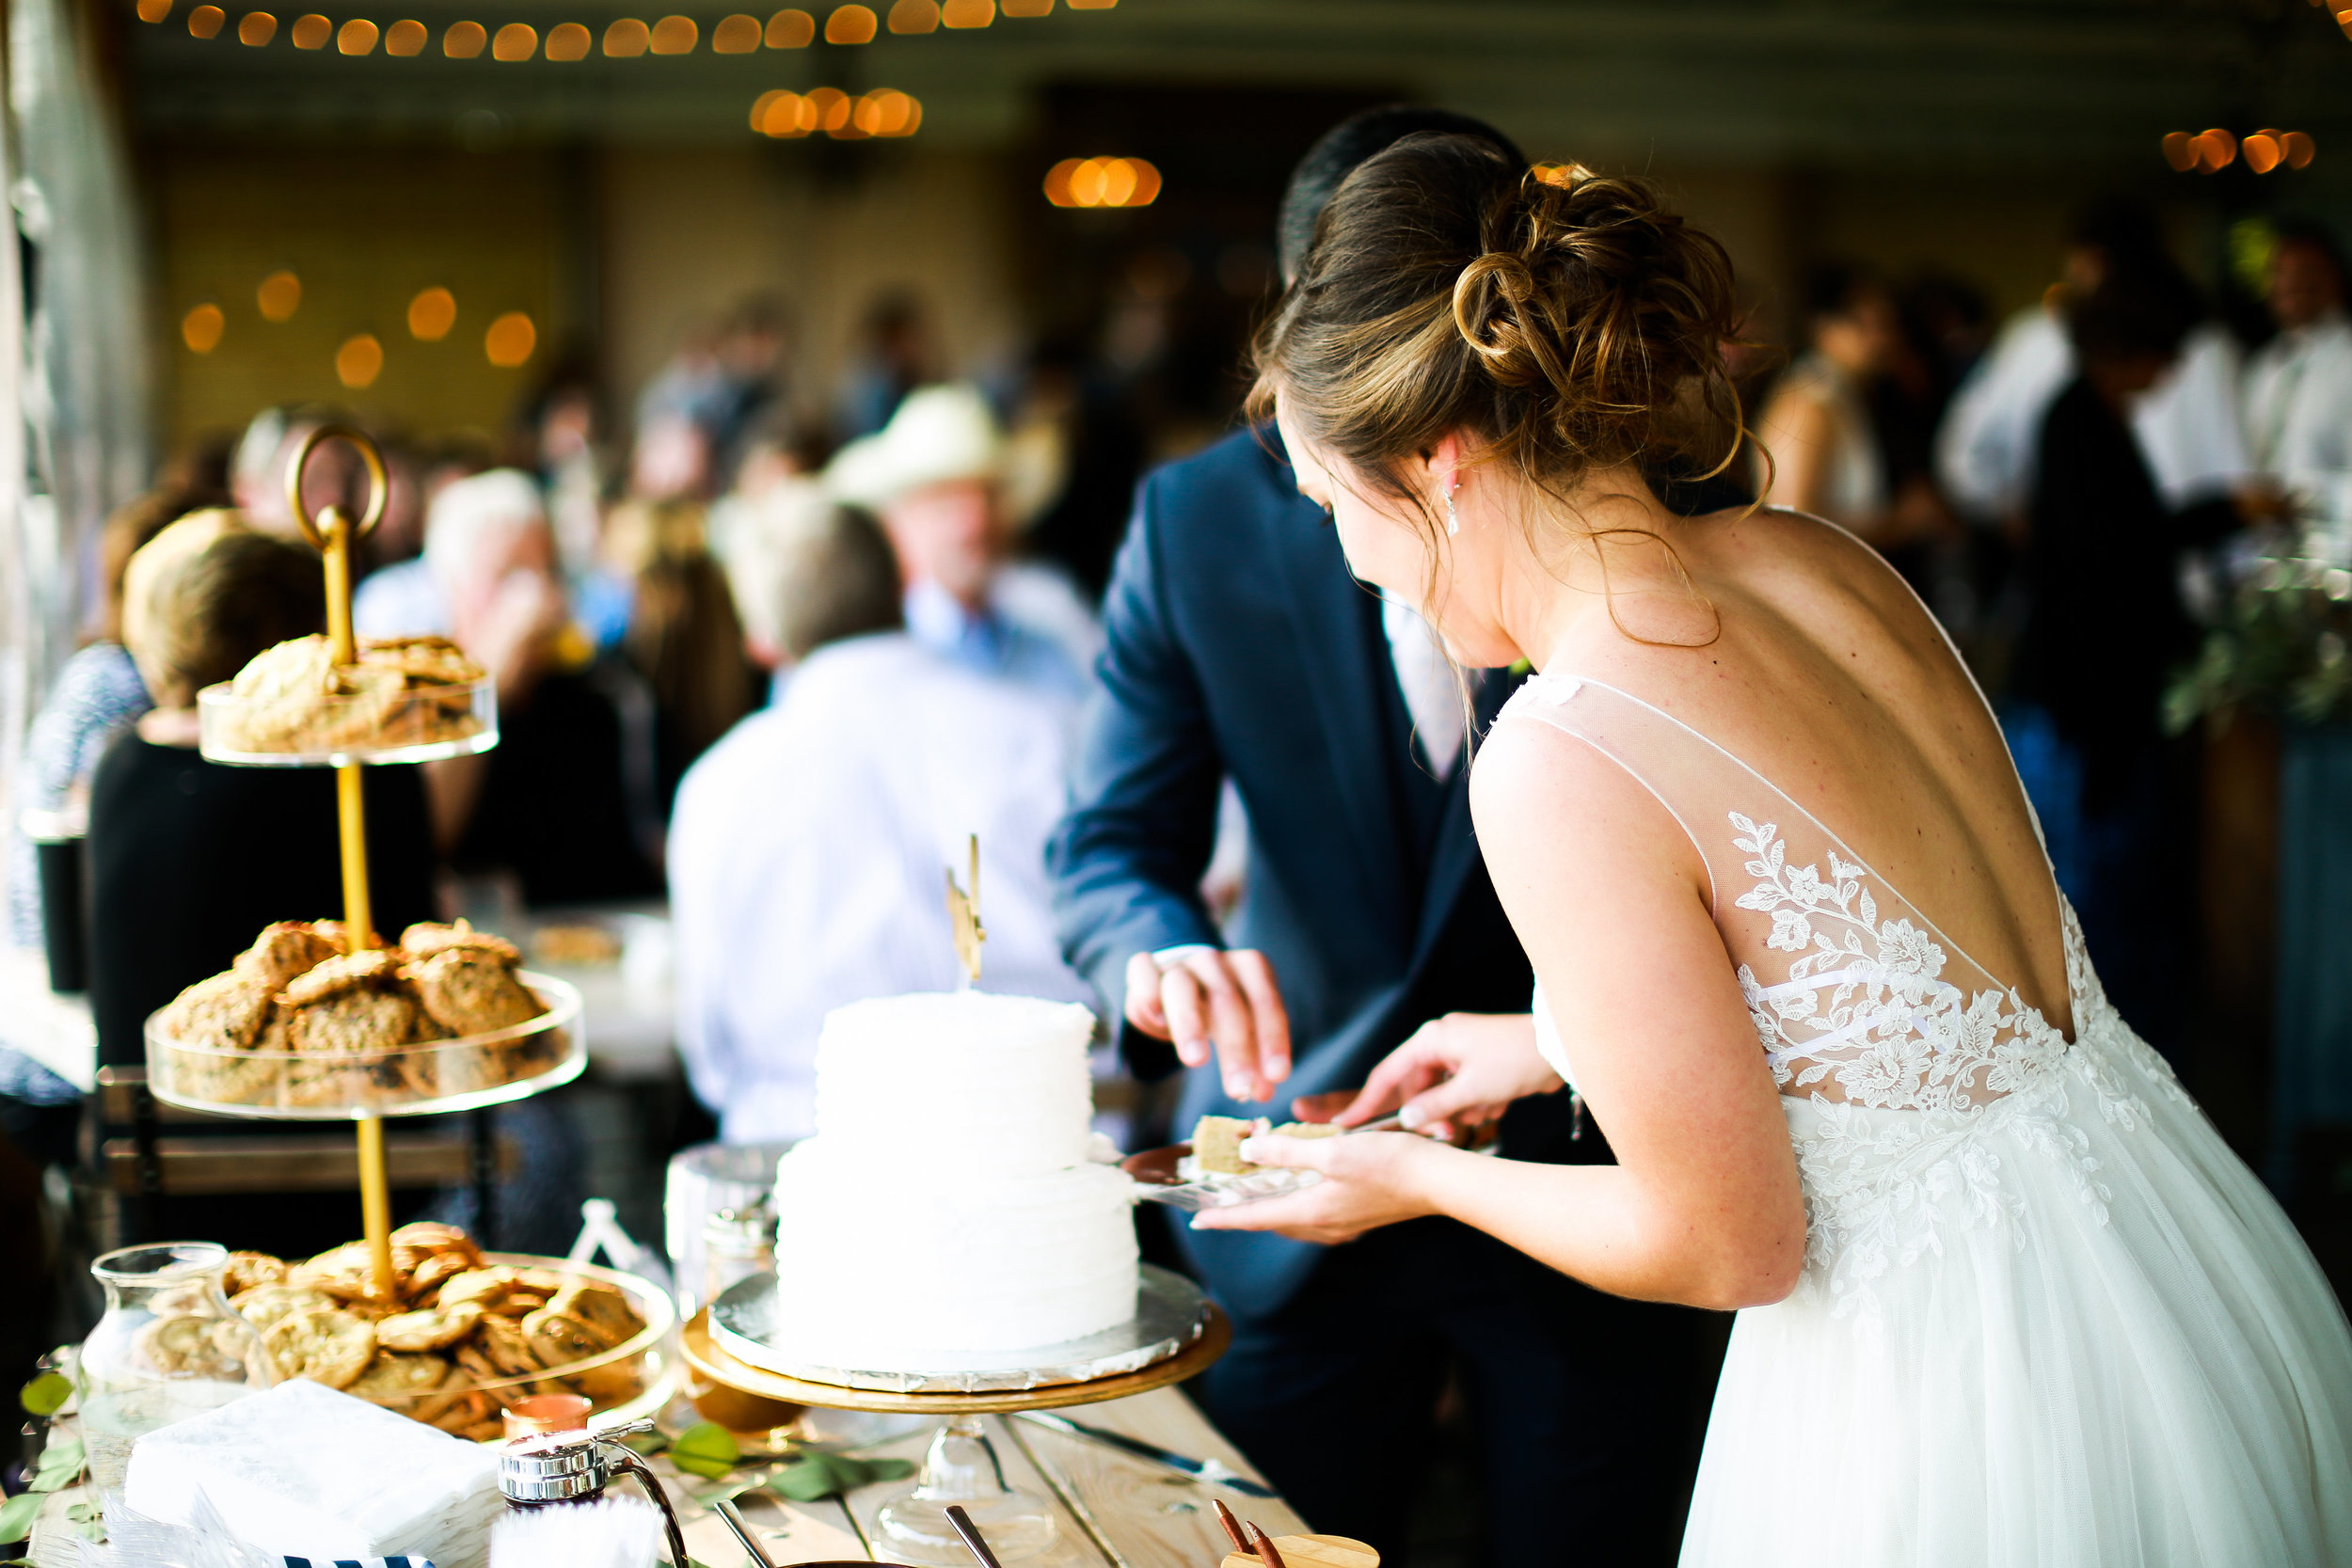 Jenna Kevin Wedding   Sixpence Events day of coordinating   Hannah Schmitt Photography   Legacy Hill Farm   dessert bar with cheesecake and cookies